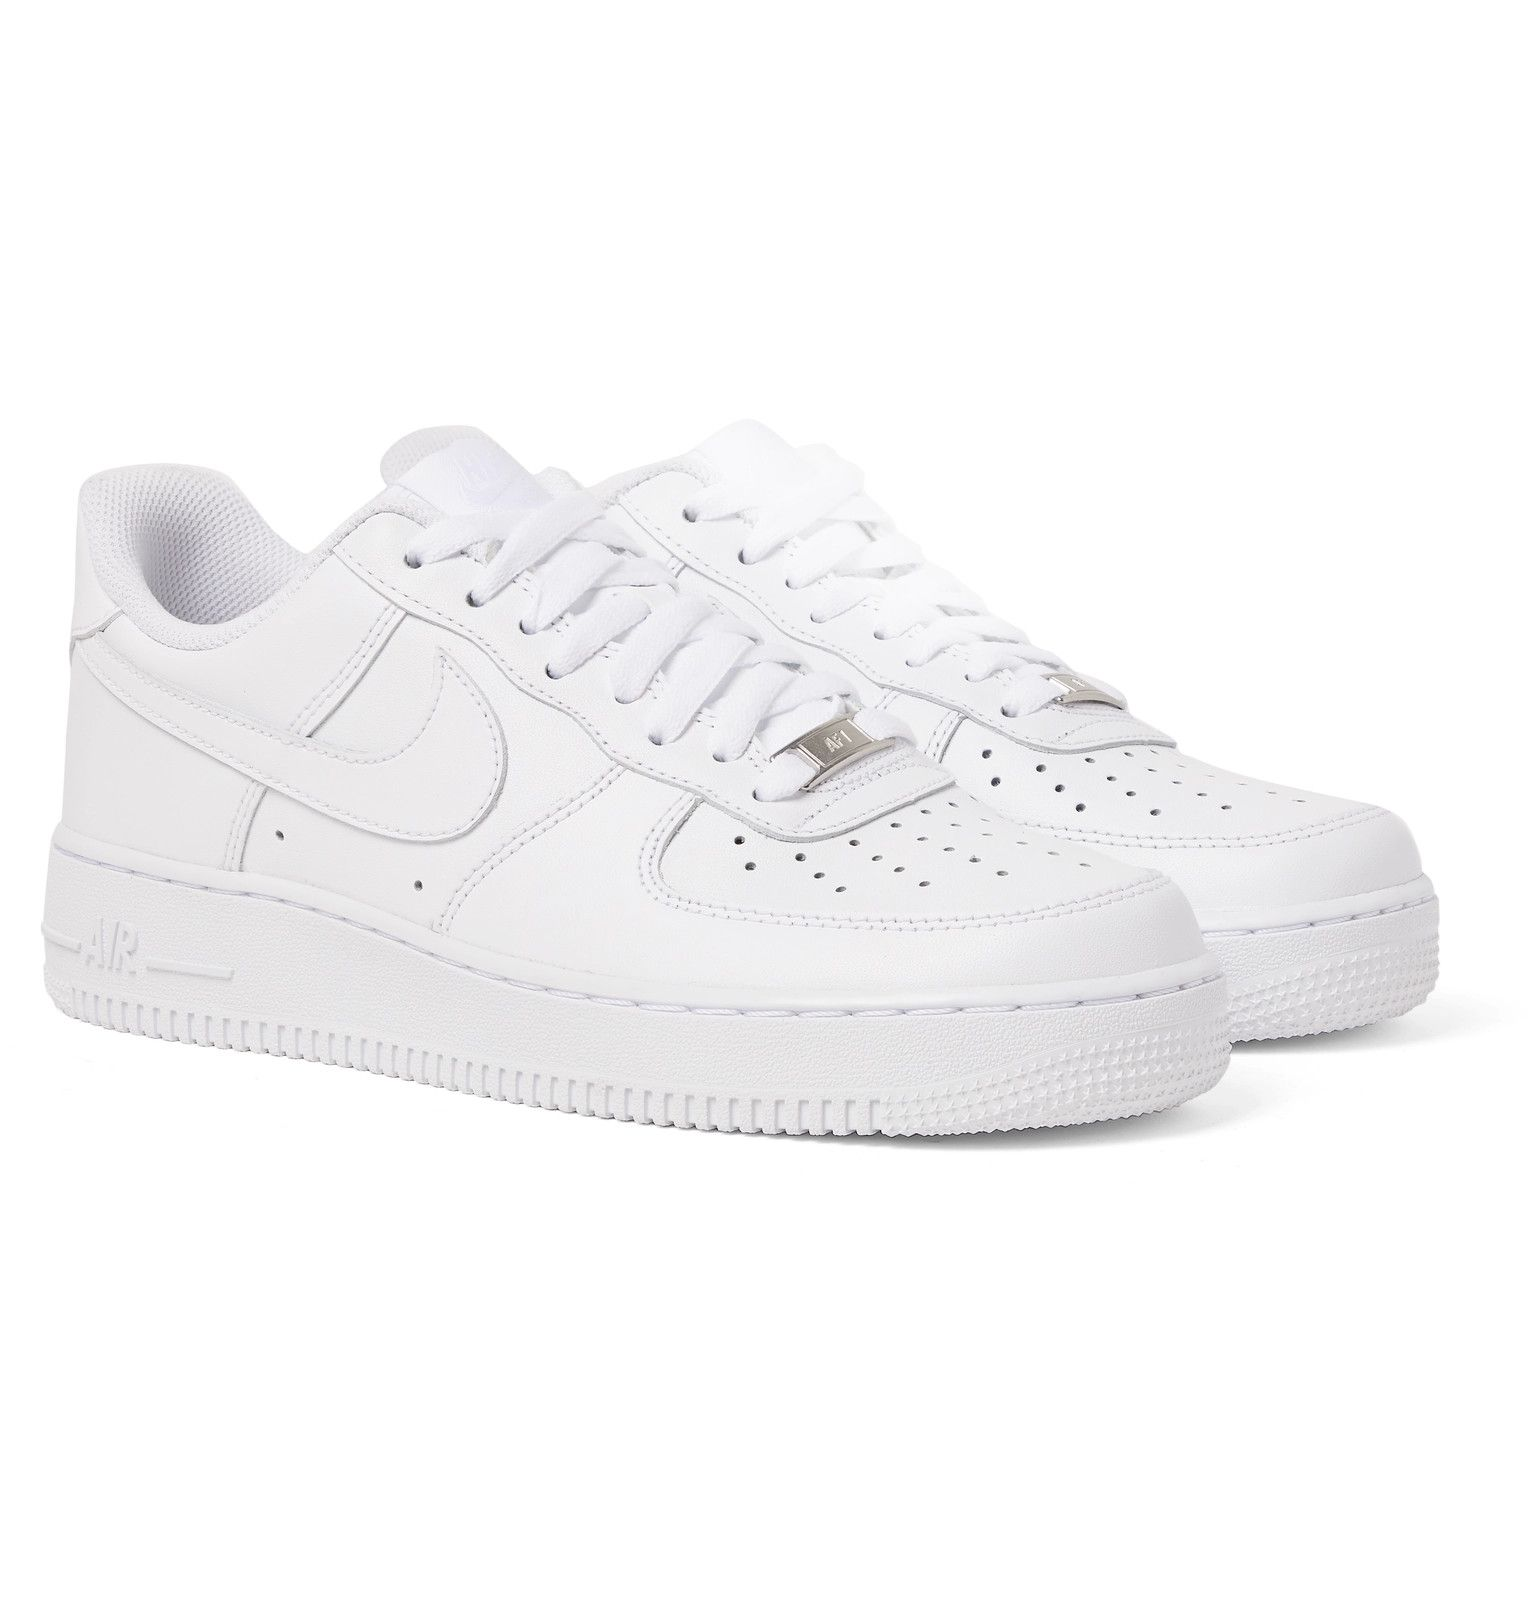 Nike Air Force 1 '07 Leather Sneakers Men White